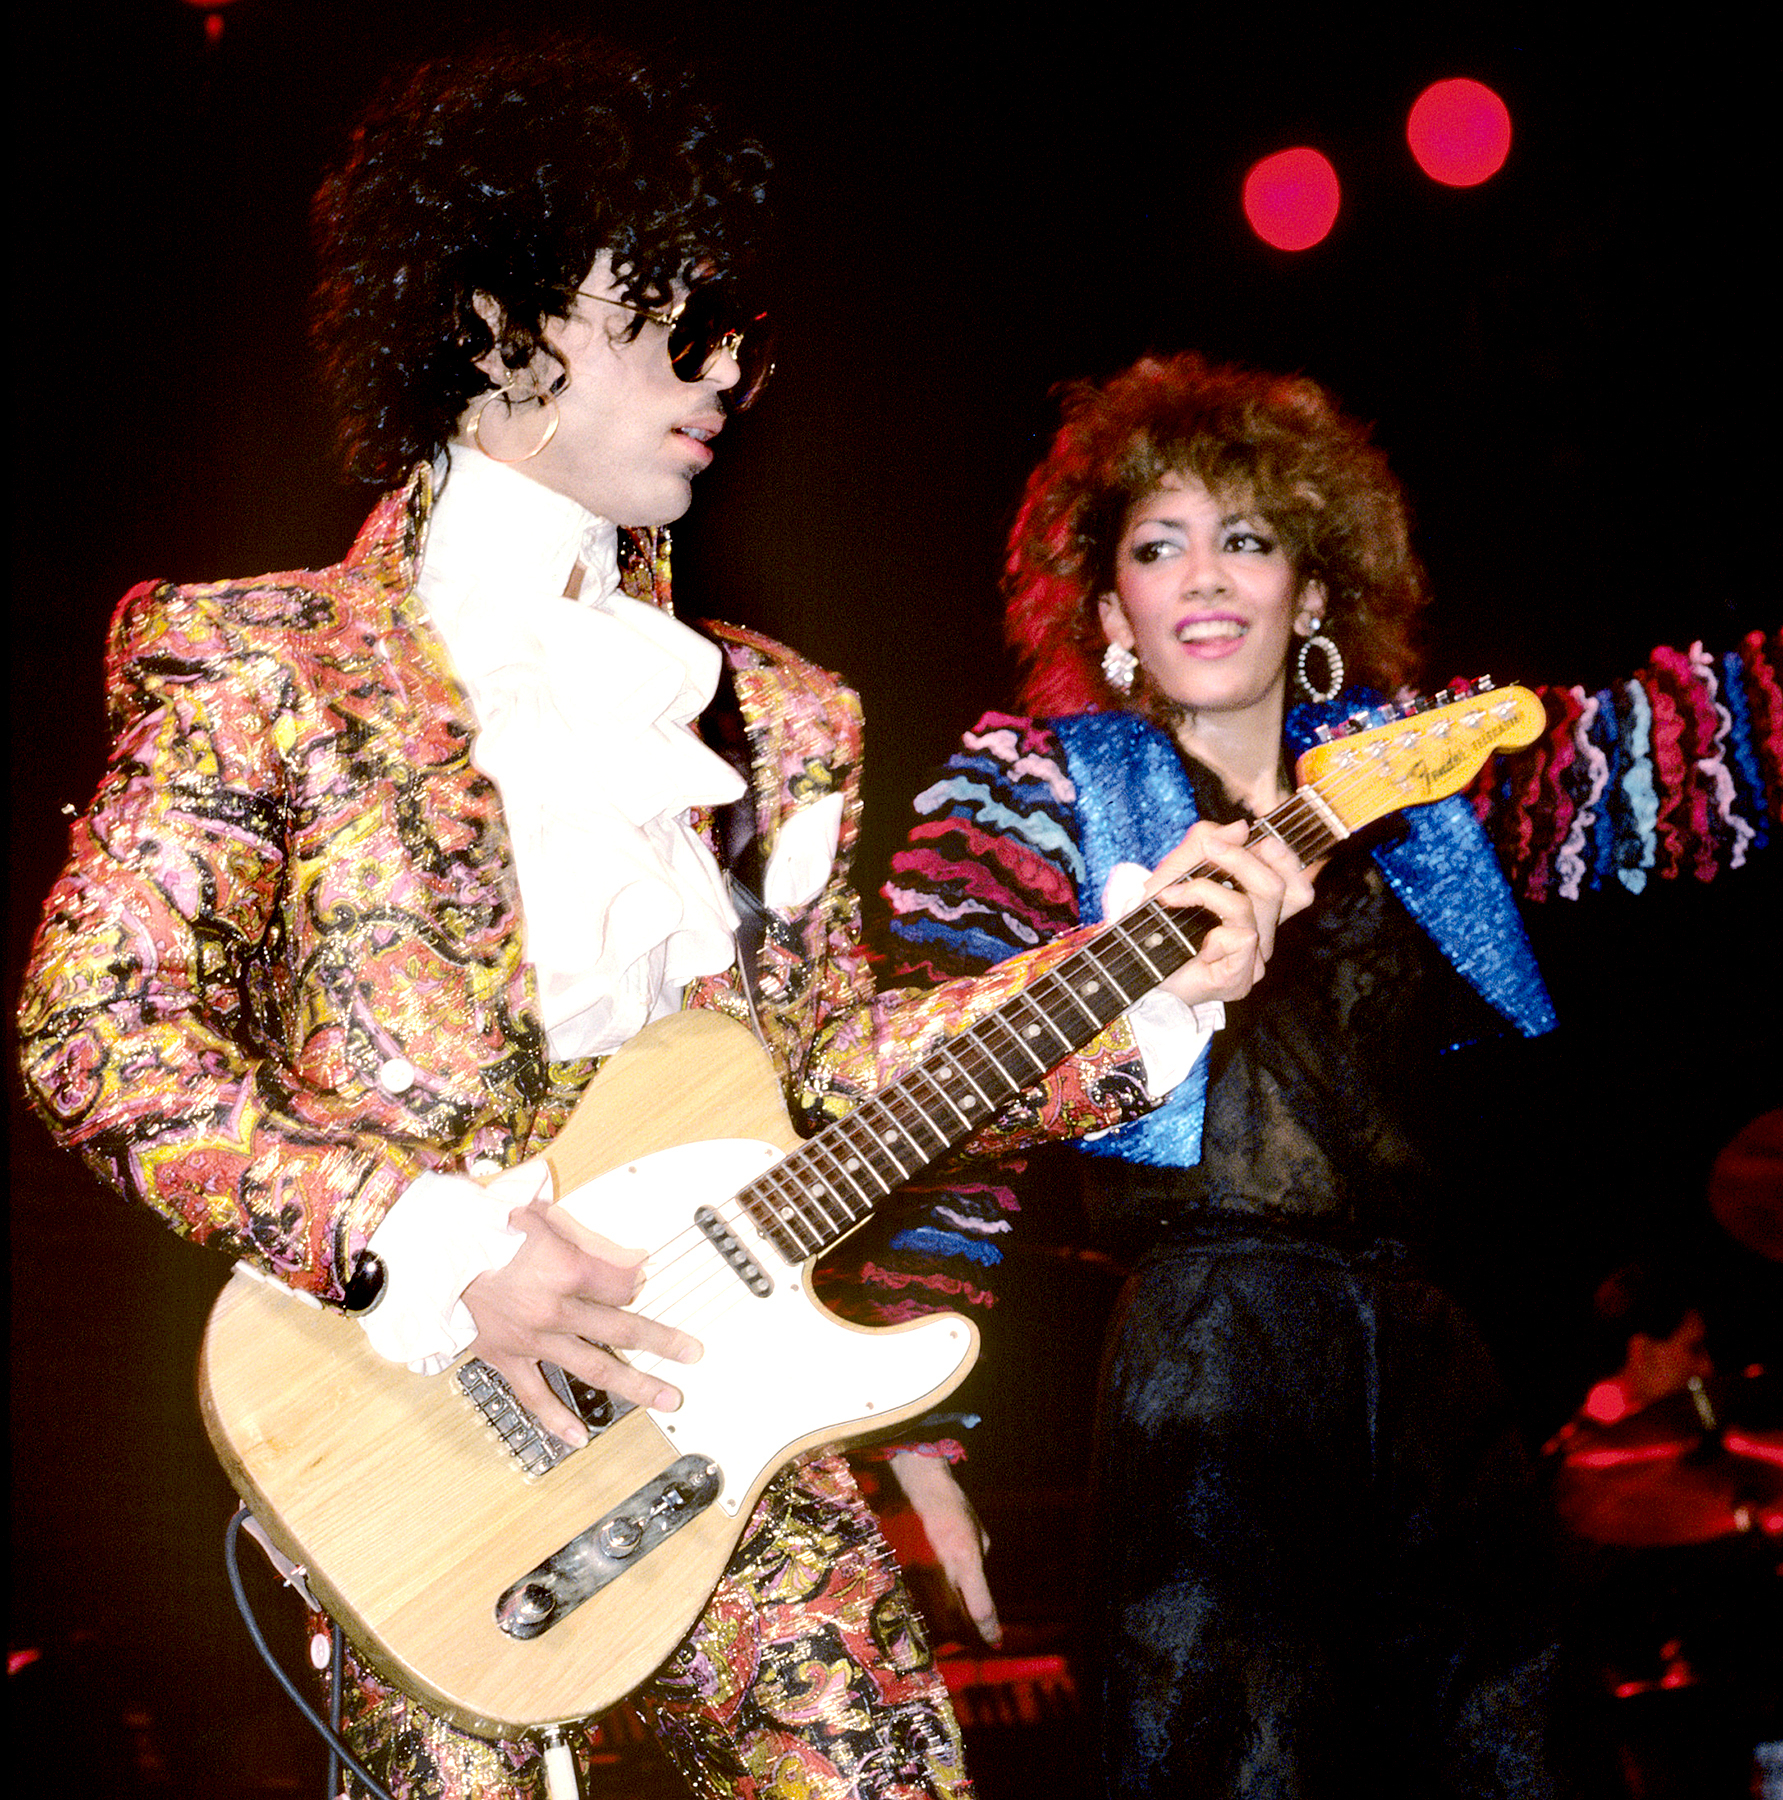 Prince and Sheila E performing on stage on the Purple Rain tour in 1984.